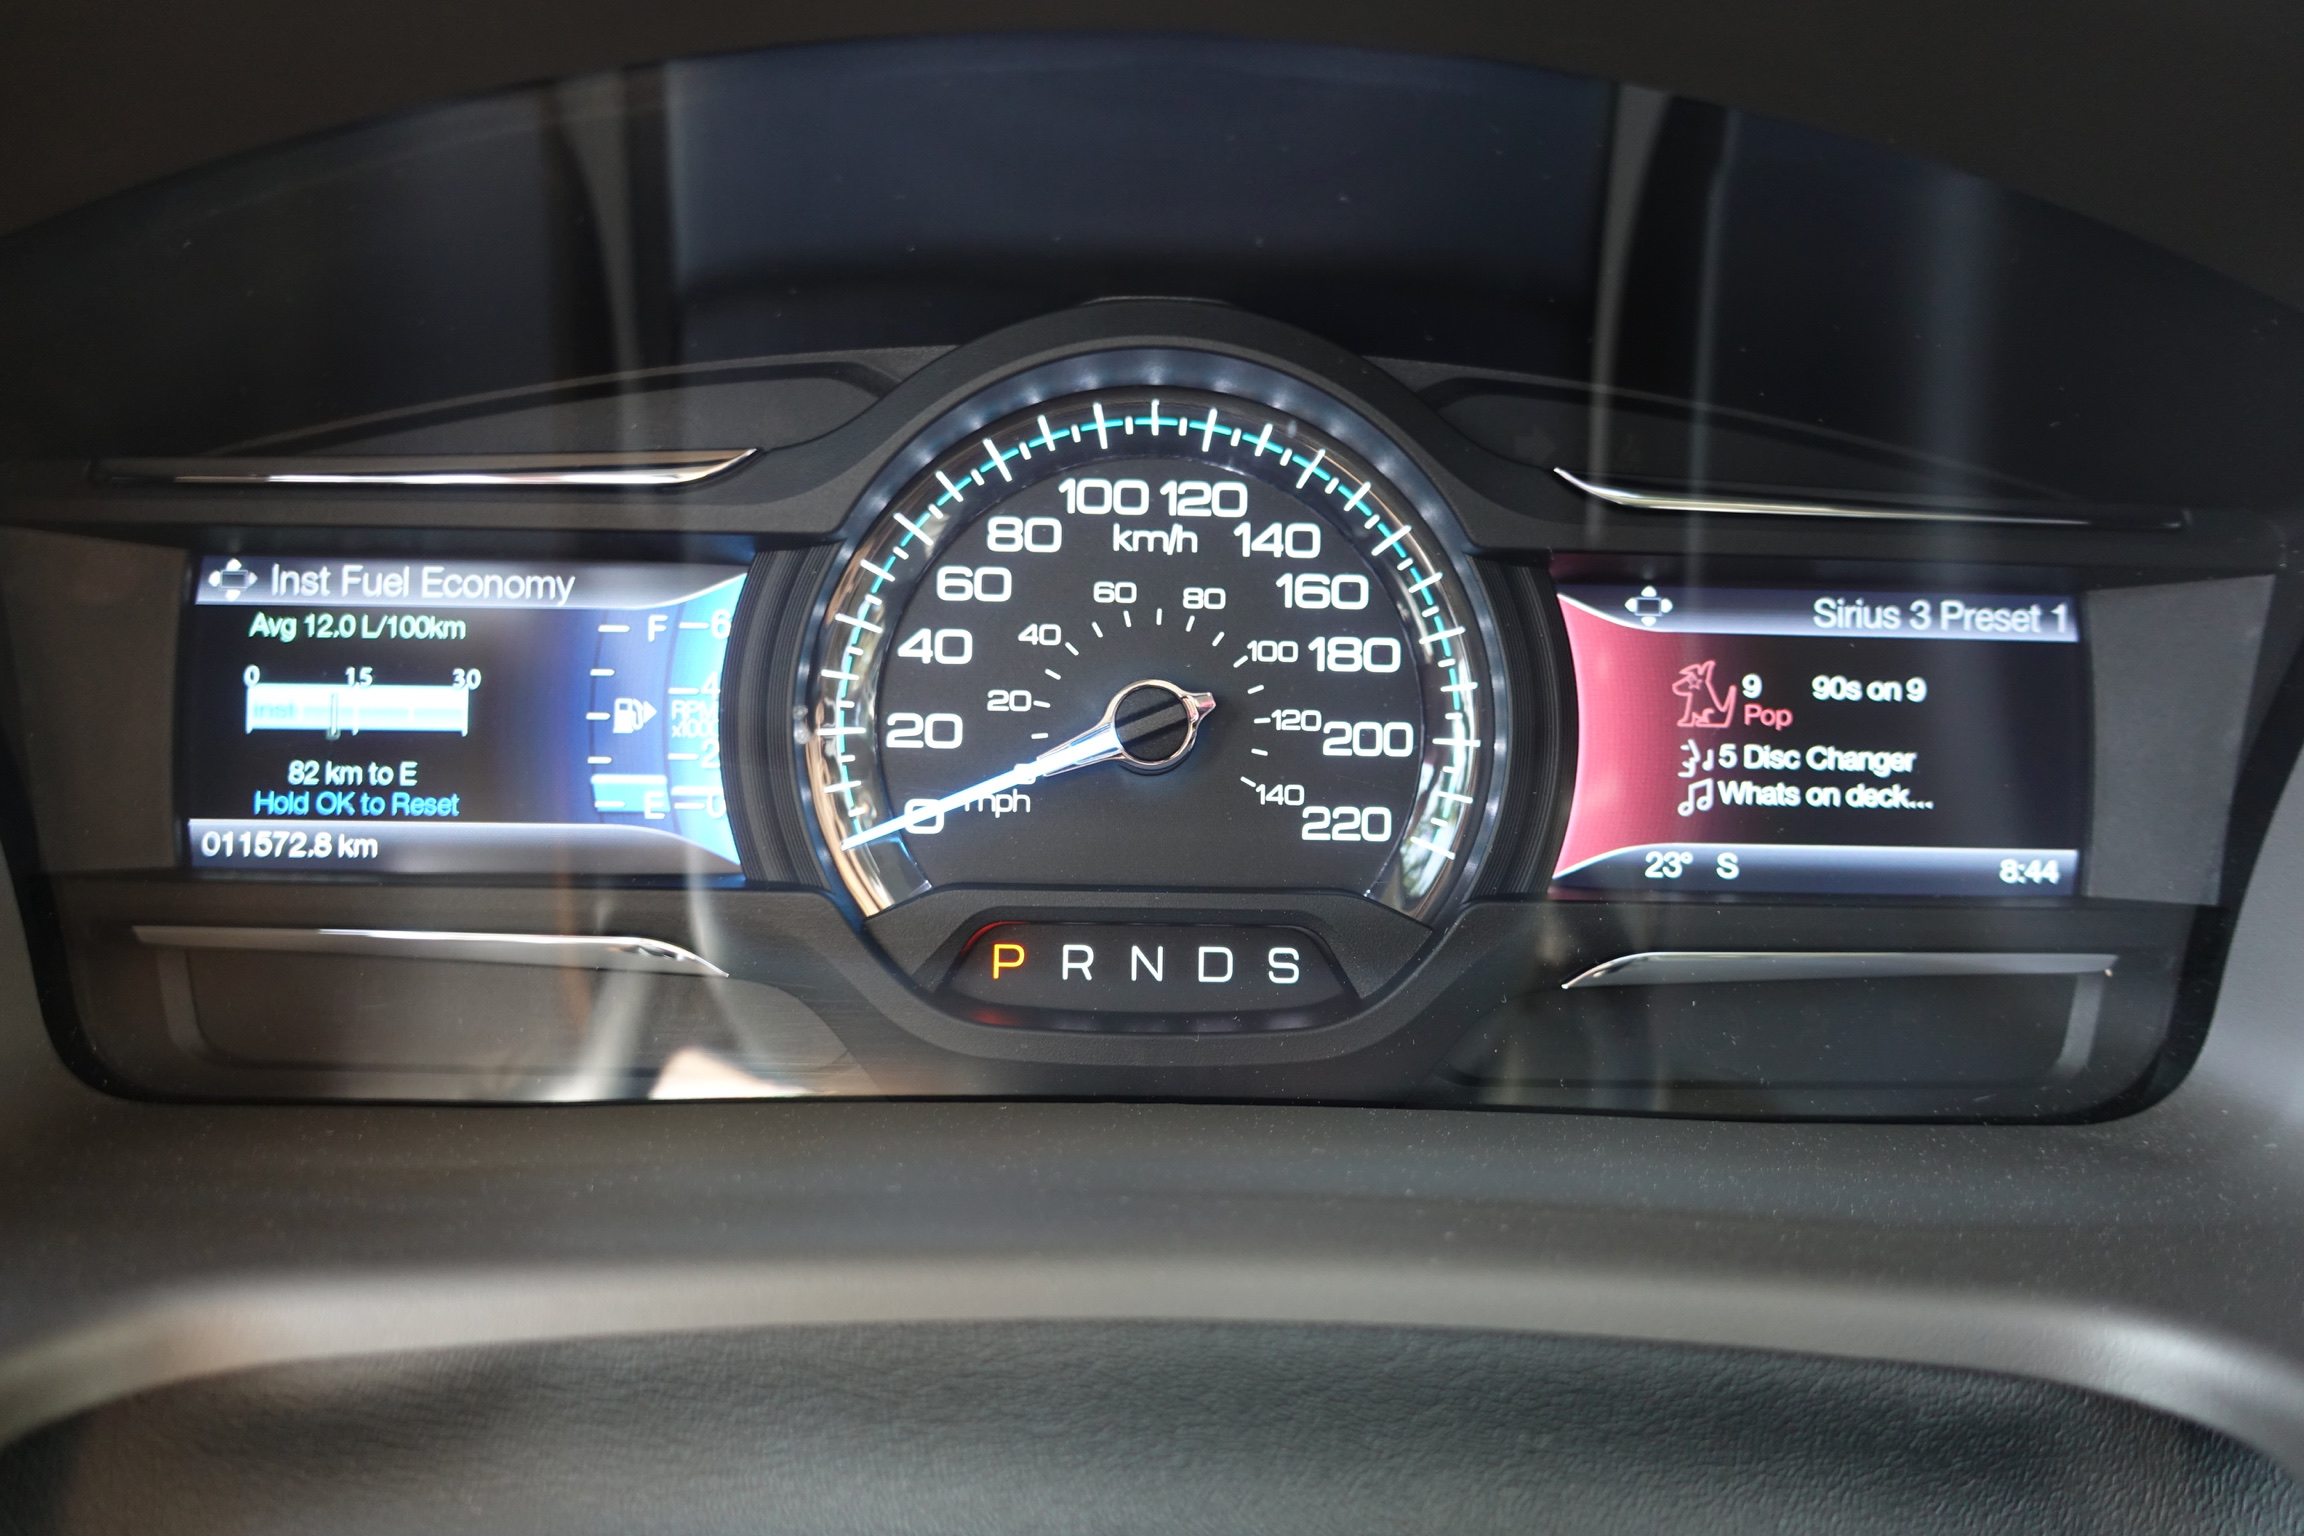 Ford Flex Dash